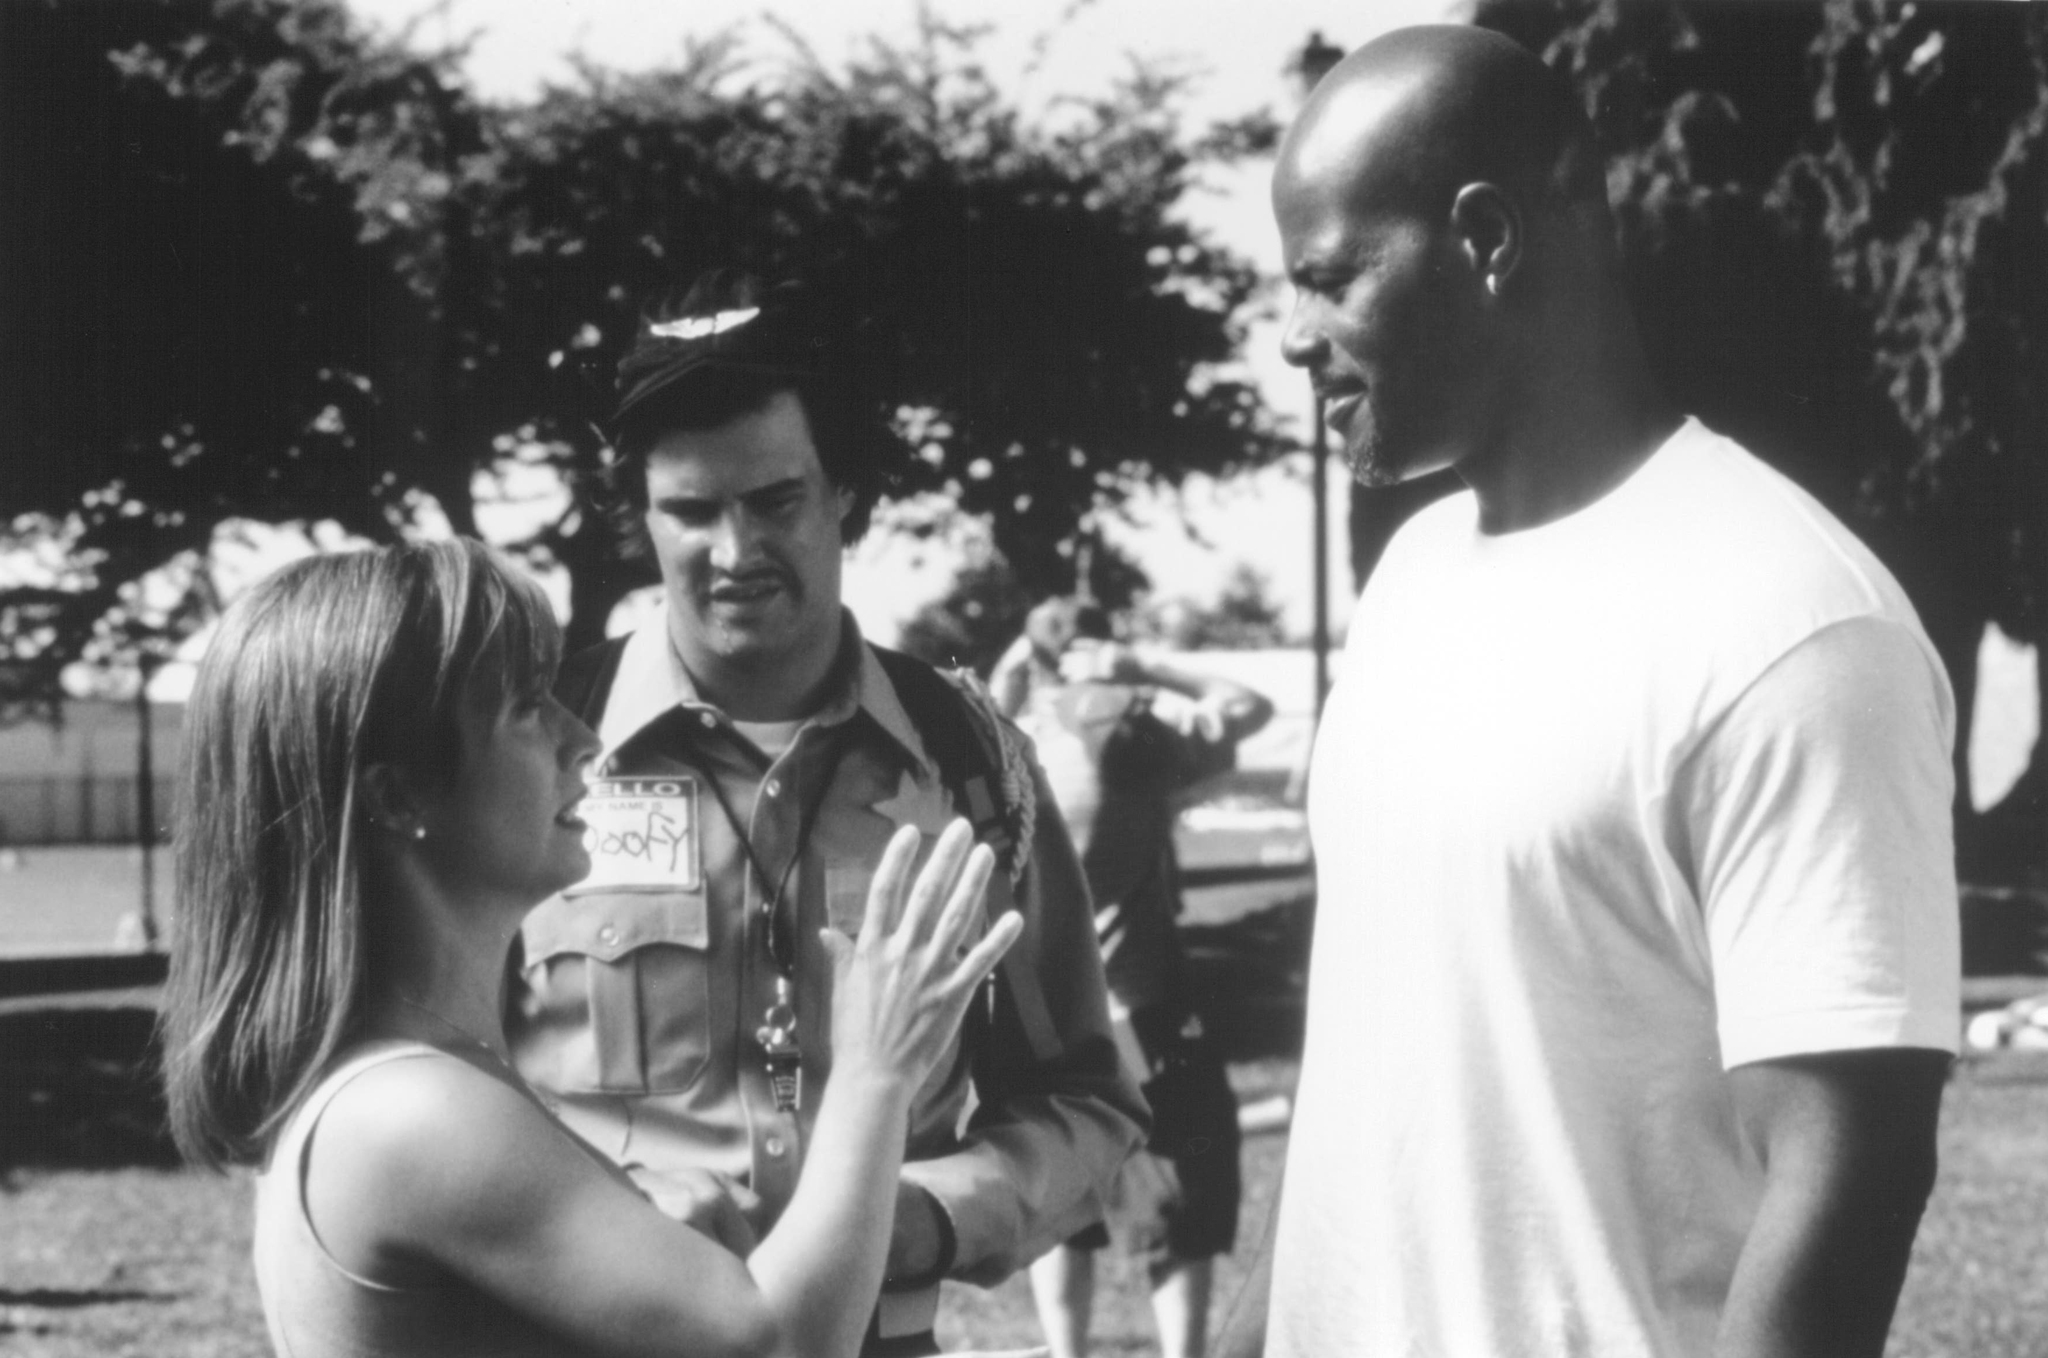 Keenen Ivory Wayans, Cheri Oteri, and Dave Sheridan in Scary Movie (2000)